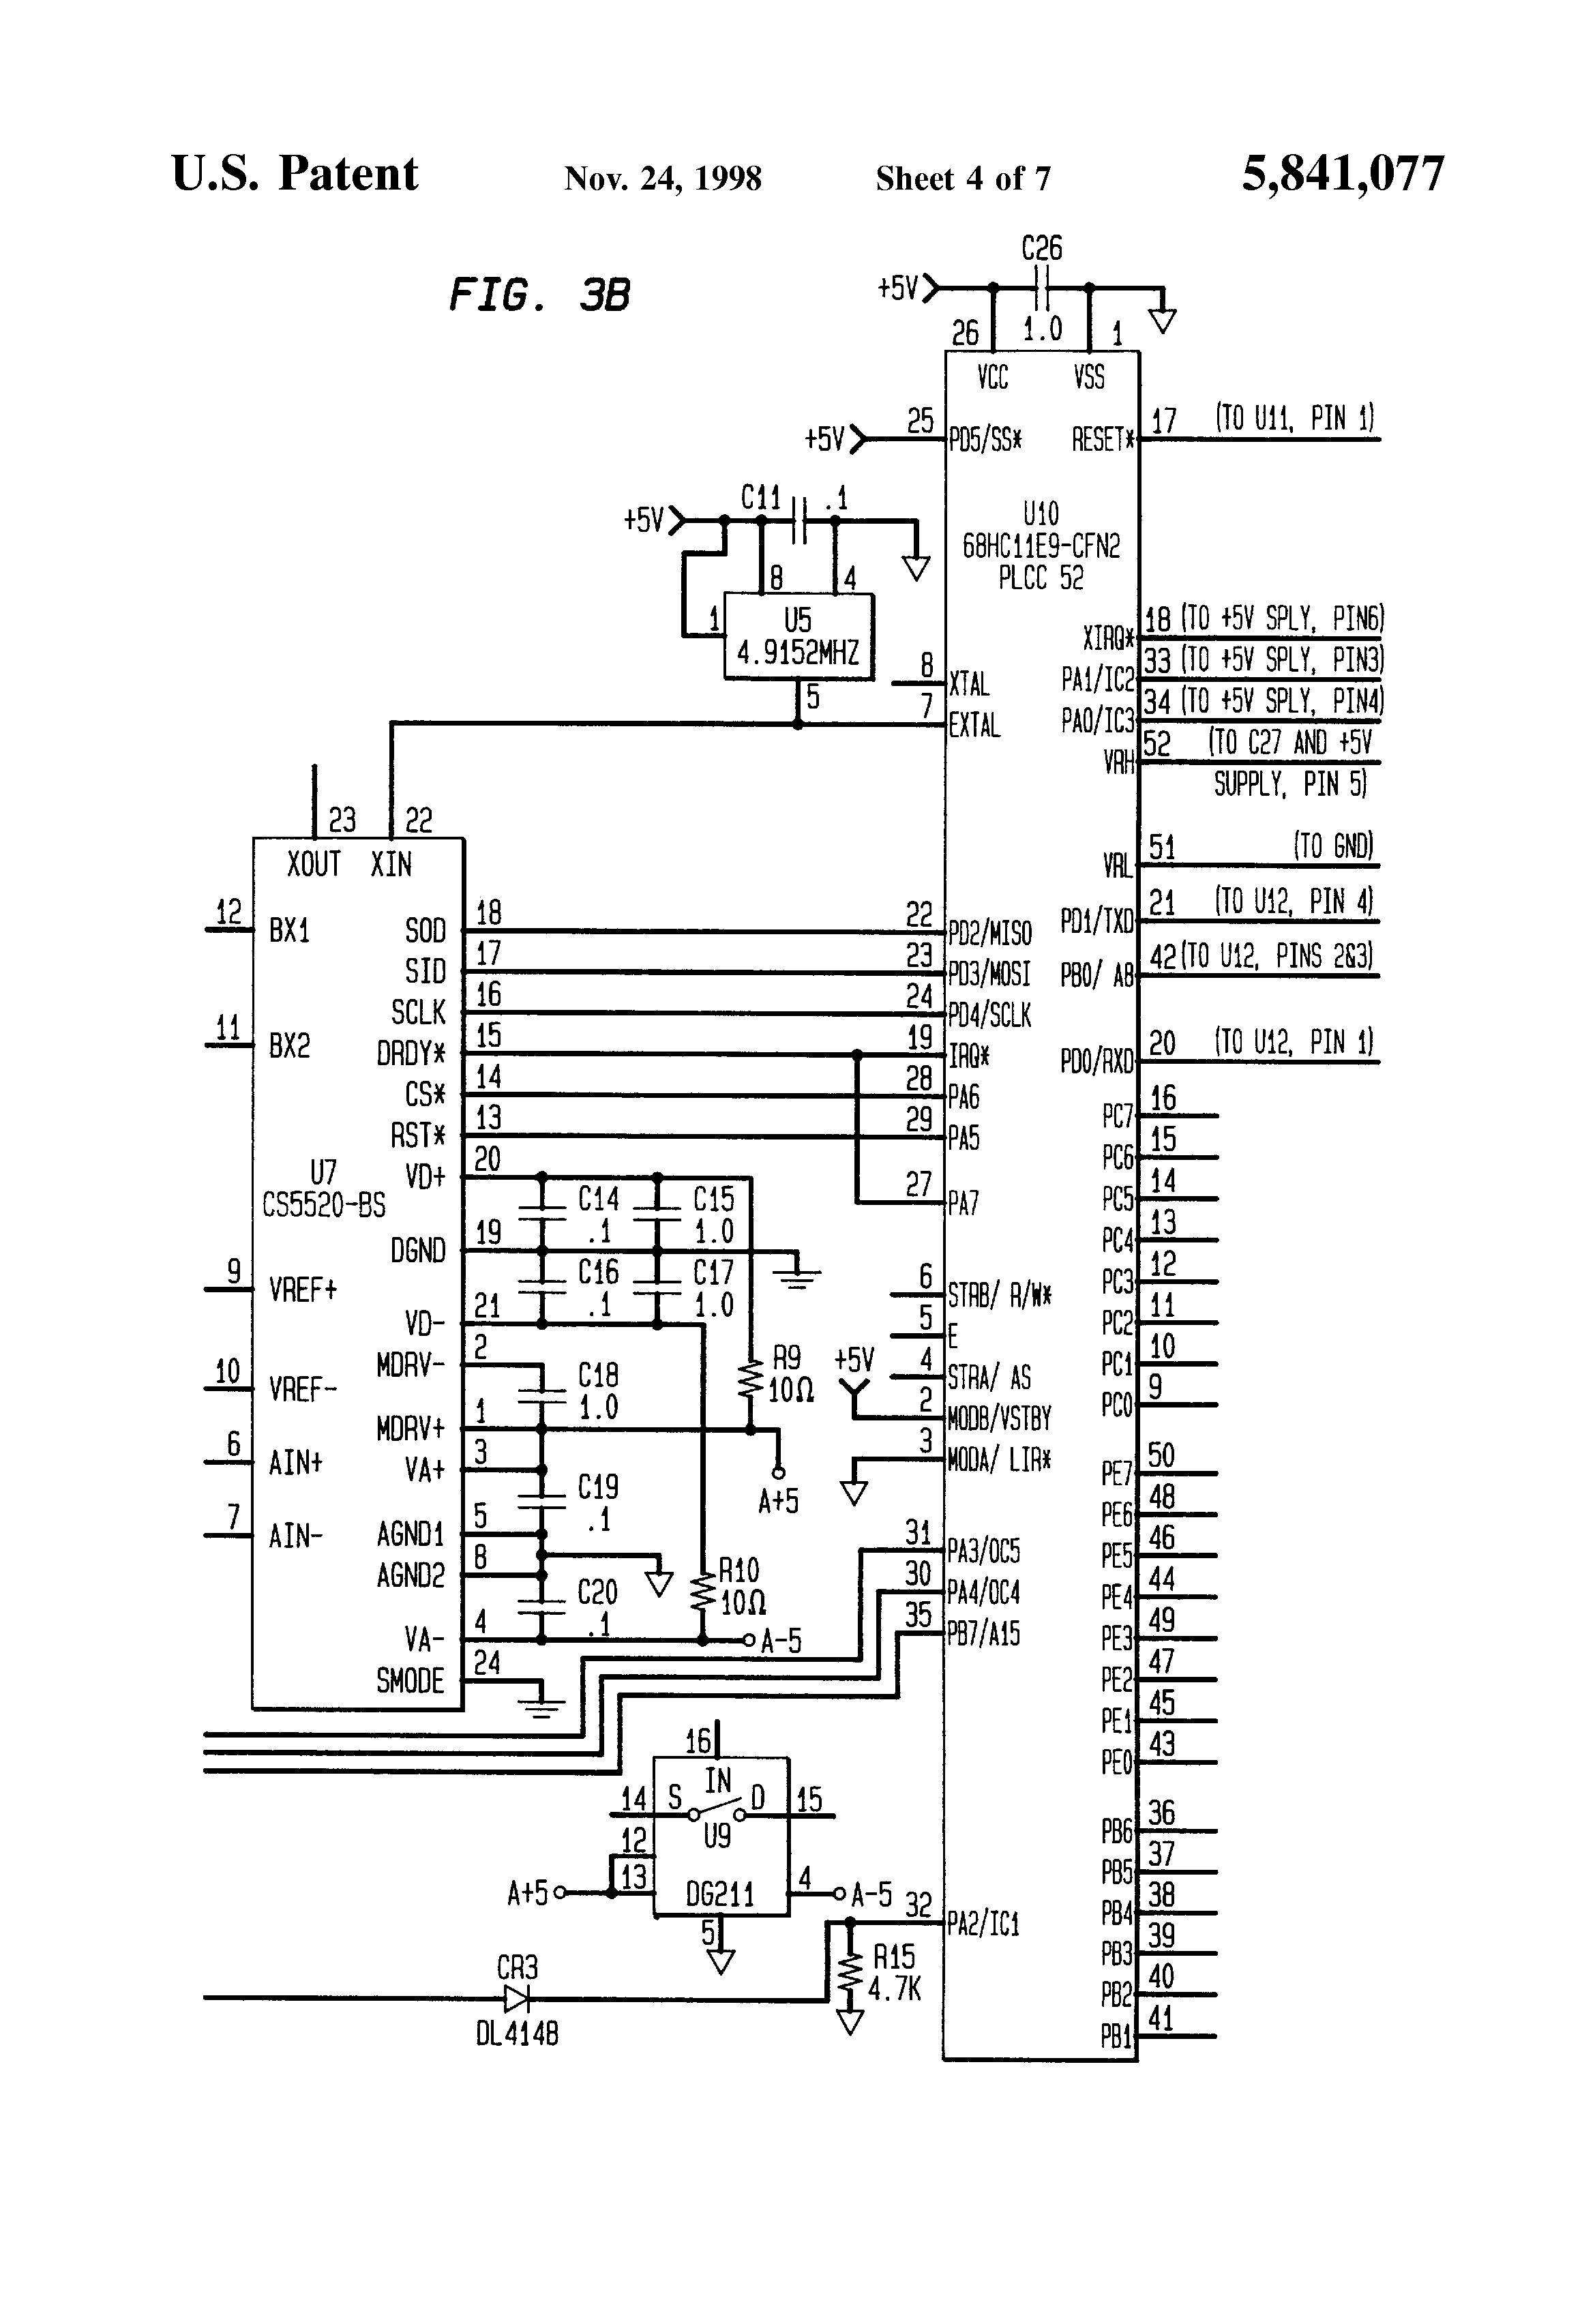 Light Switch Wiring Diagram For Whip - Wire Data Schema •